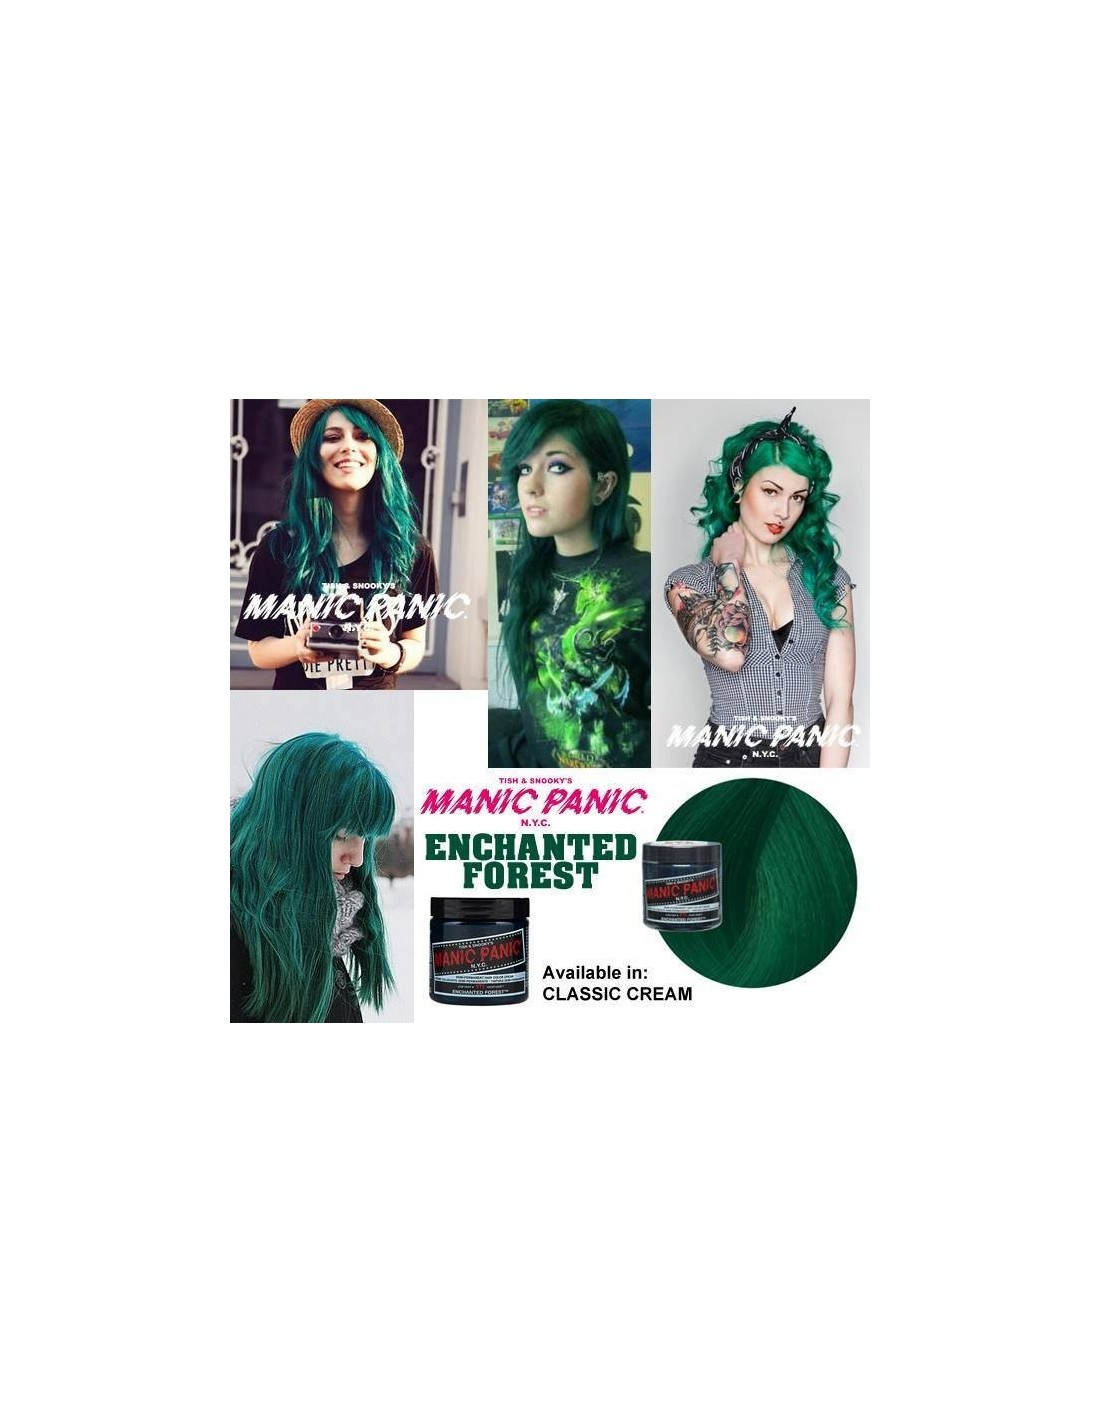 Molto AMPLIFIED ENCHANTED FOREST - Manic Panic España JI56